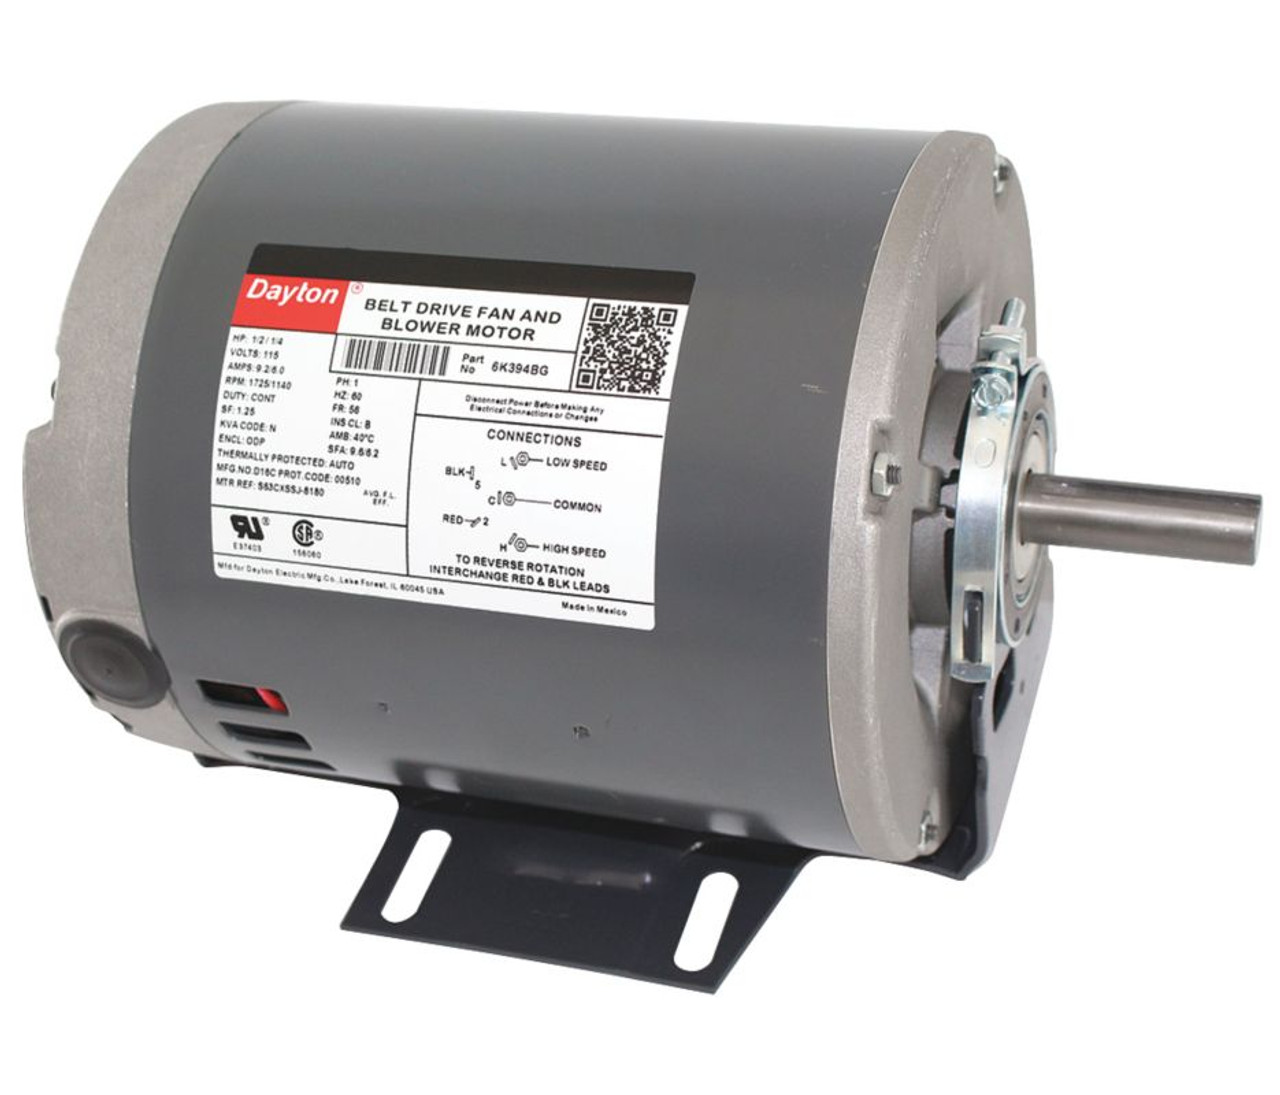 1/2 hp 1725 RPM 2-speed 115V Whole House Fan Motor Dayton 6K394